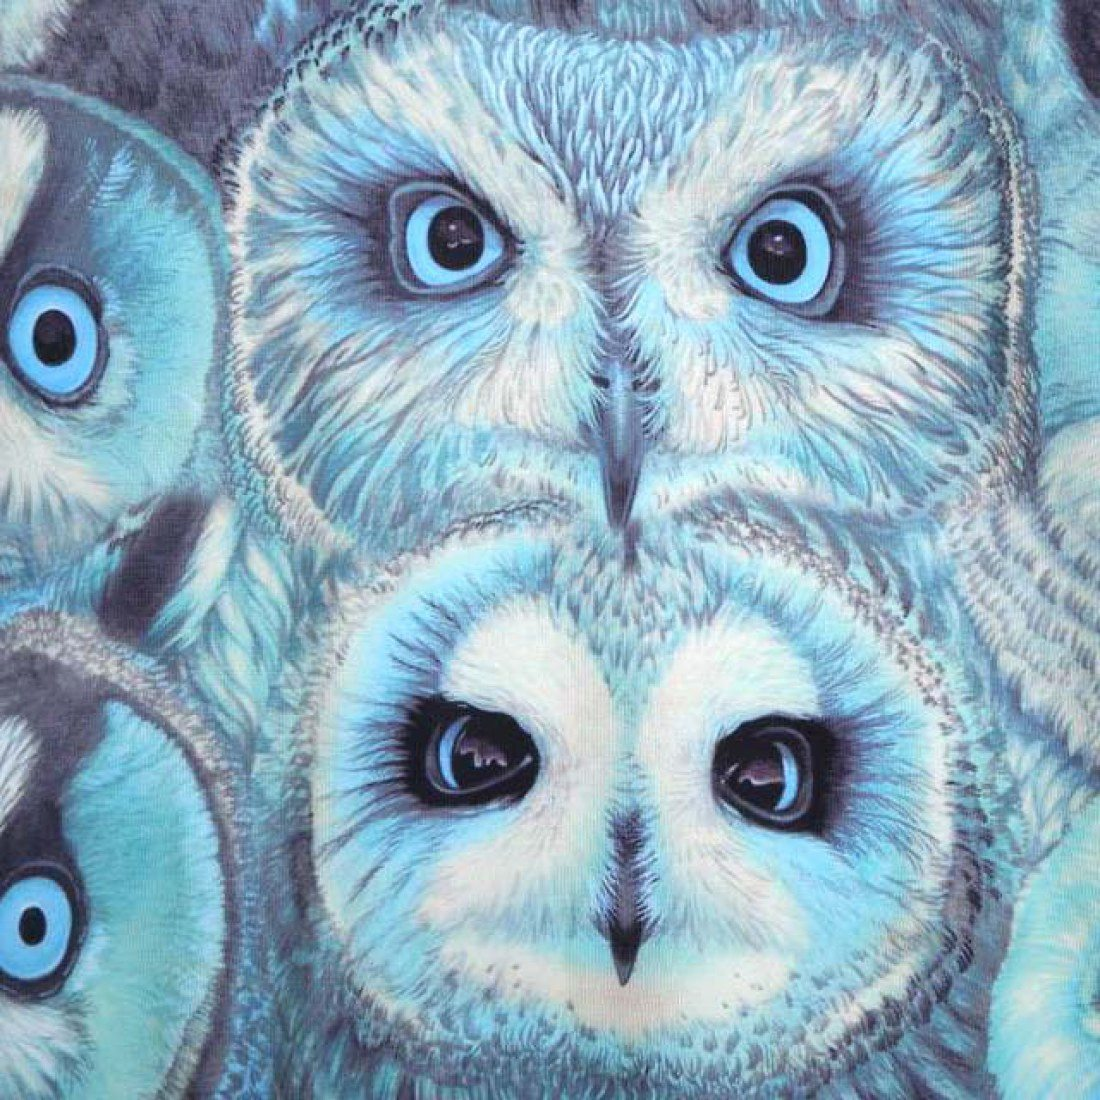 Realistic Owl Face Collage Graphic Print Pullover Sweater in Blue